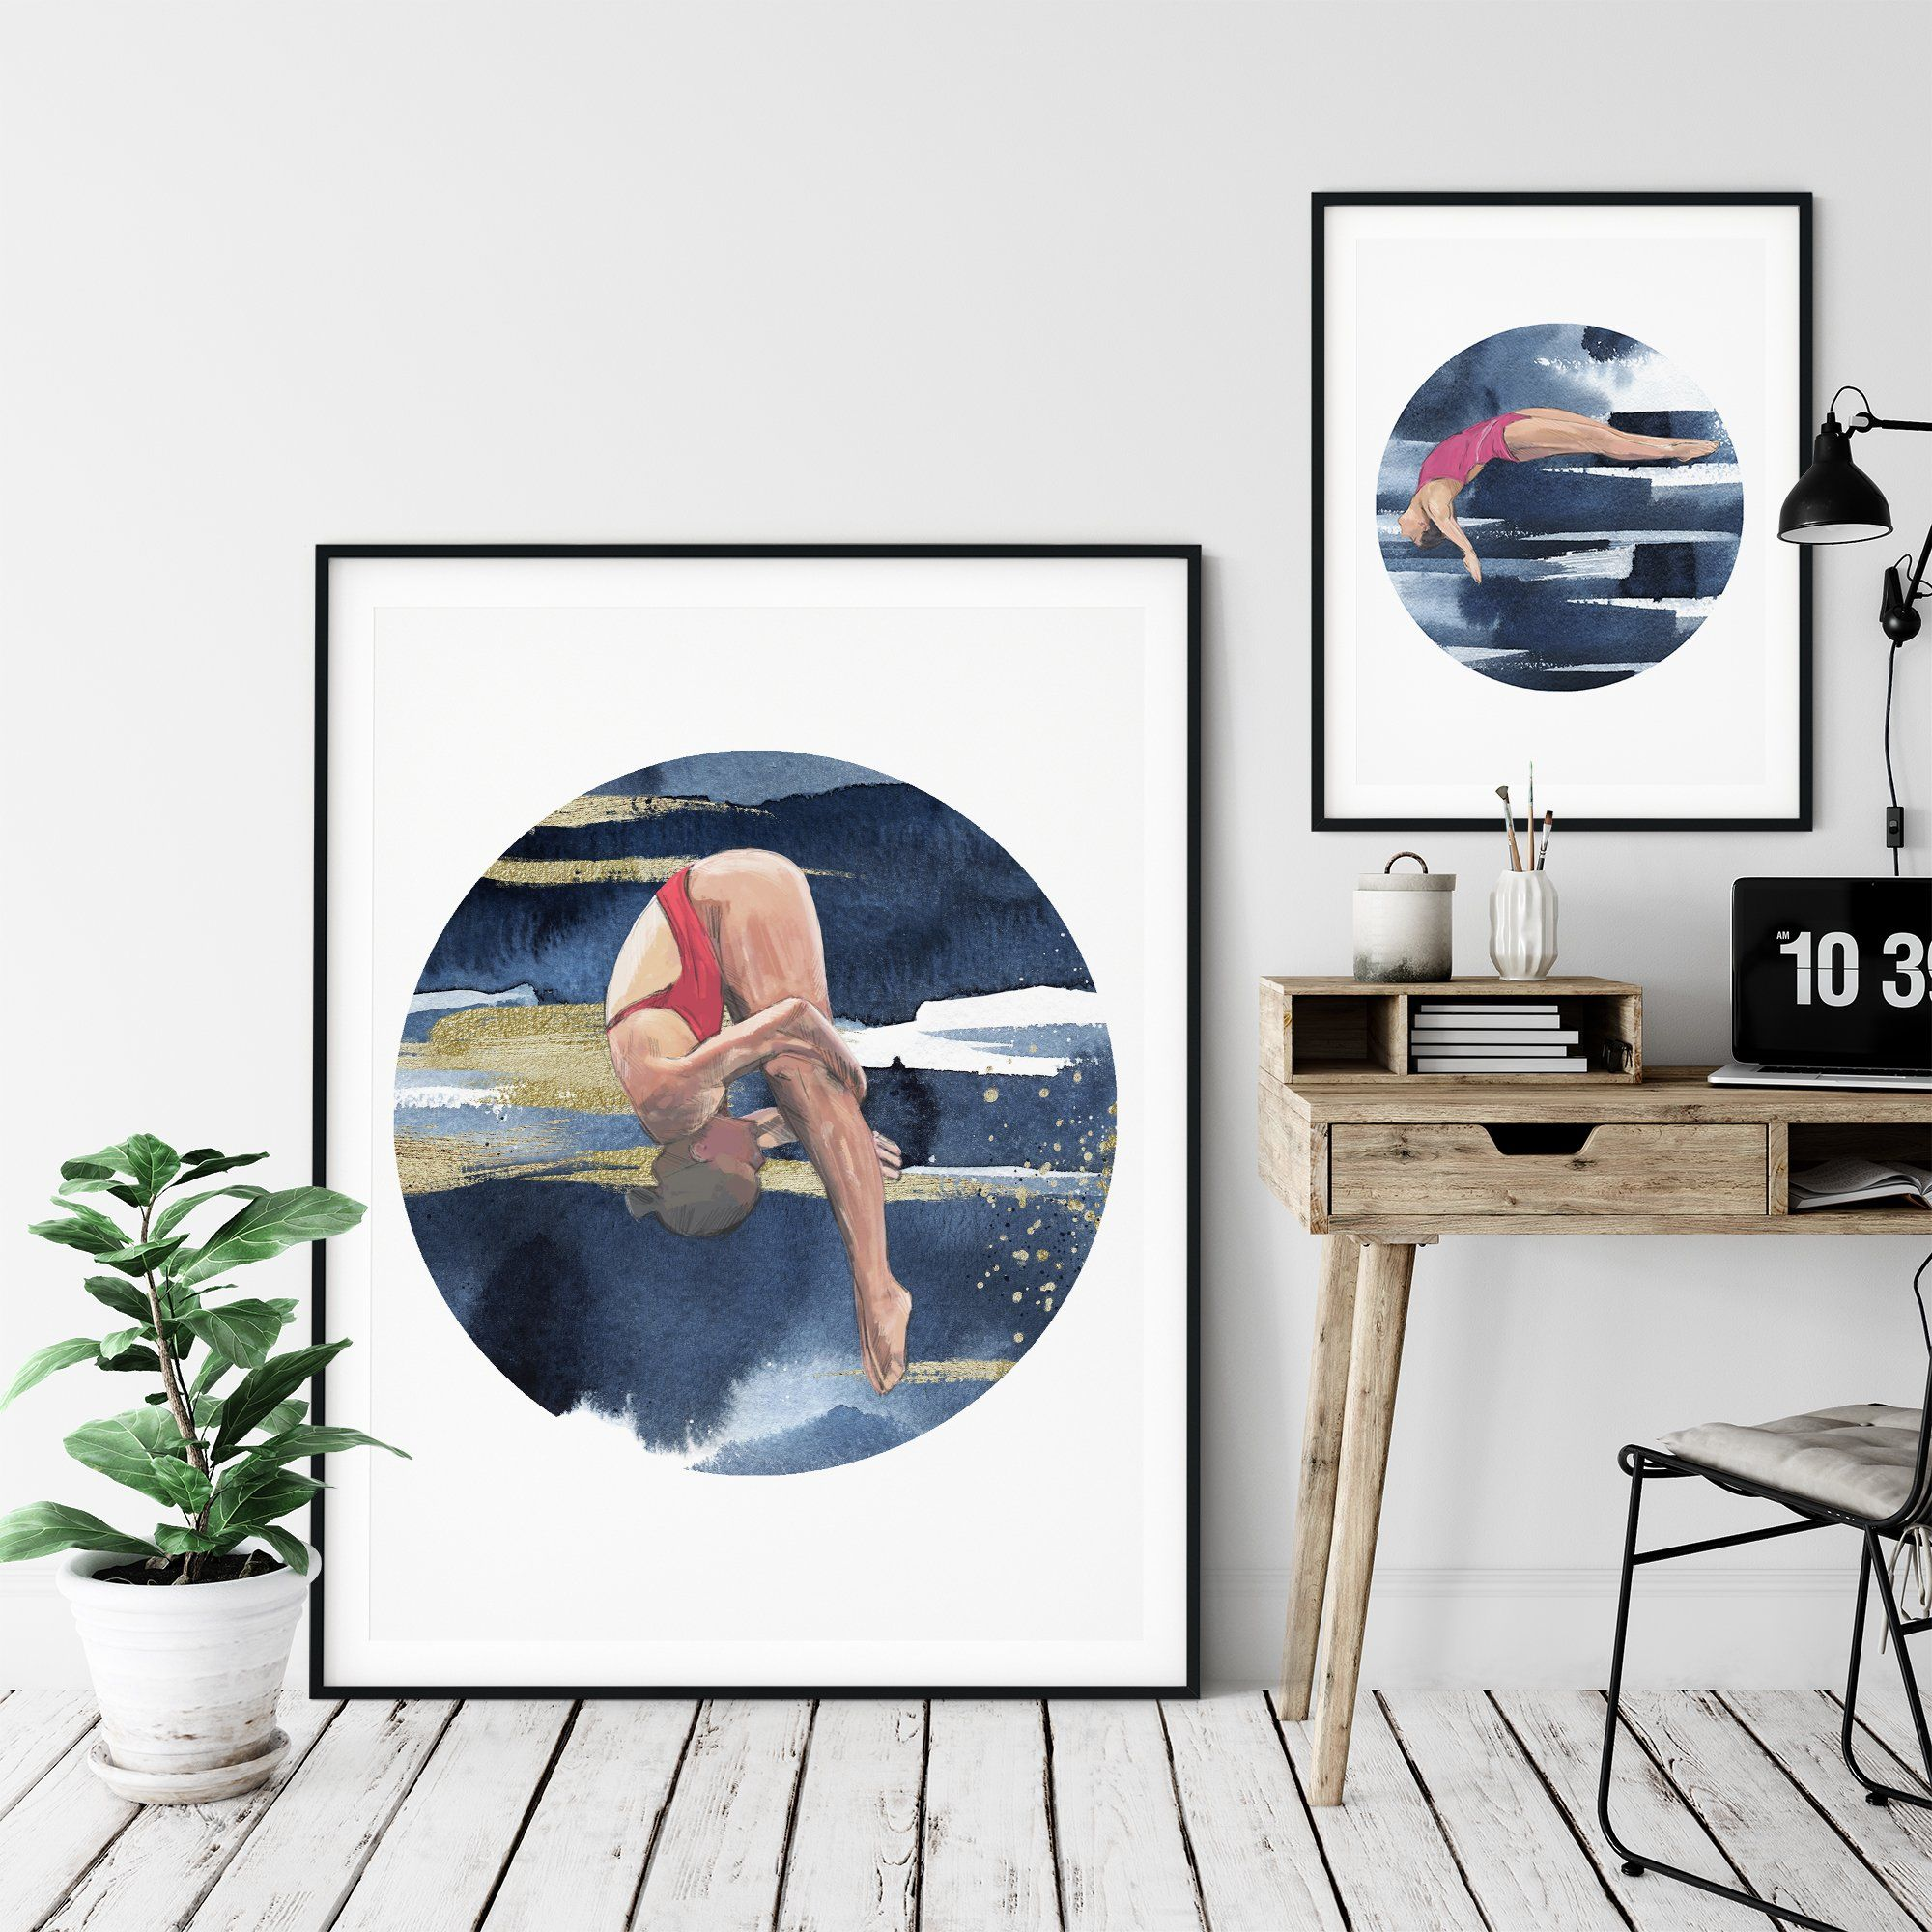 DIVE GIRL 'GLIDE', CIRCLE ON SQUARE Framed & Mounted Print